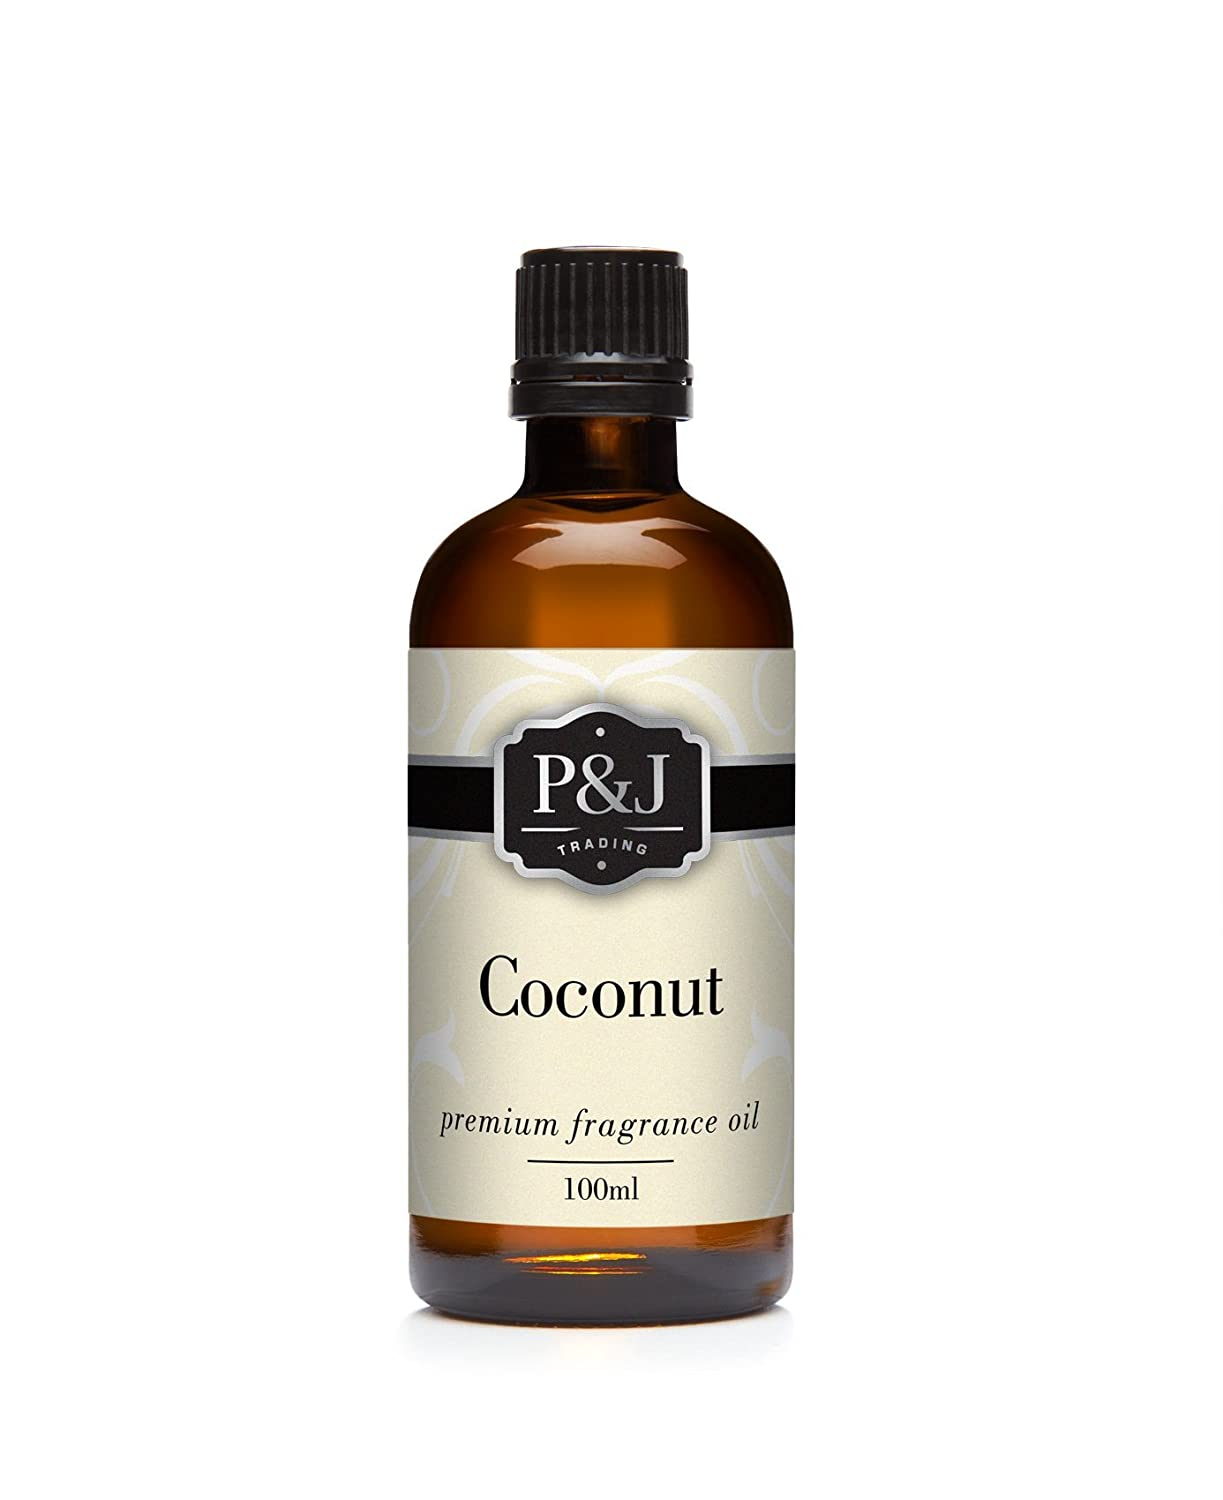 Coconut Fragrance Oil - Premium Grade Scented Oil - 100ml/3.3oz